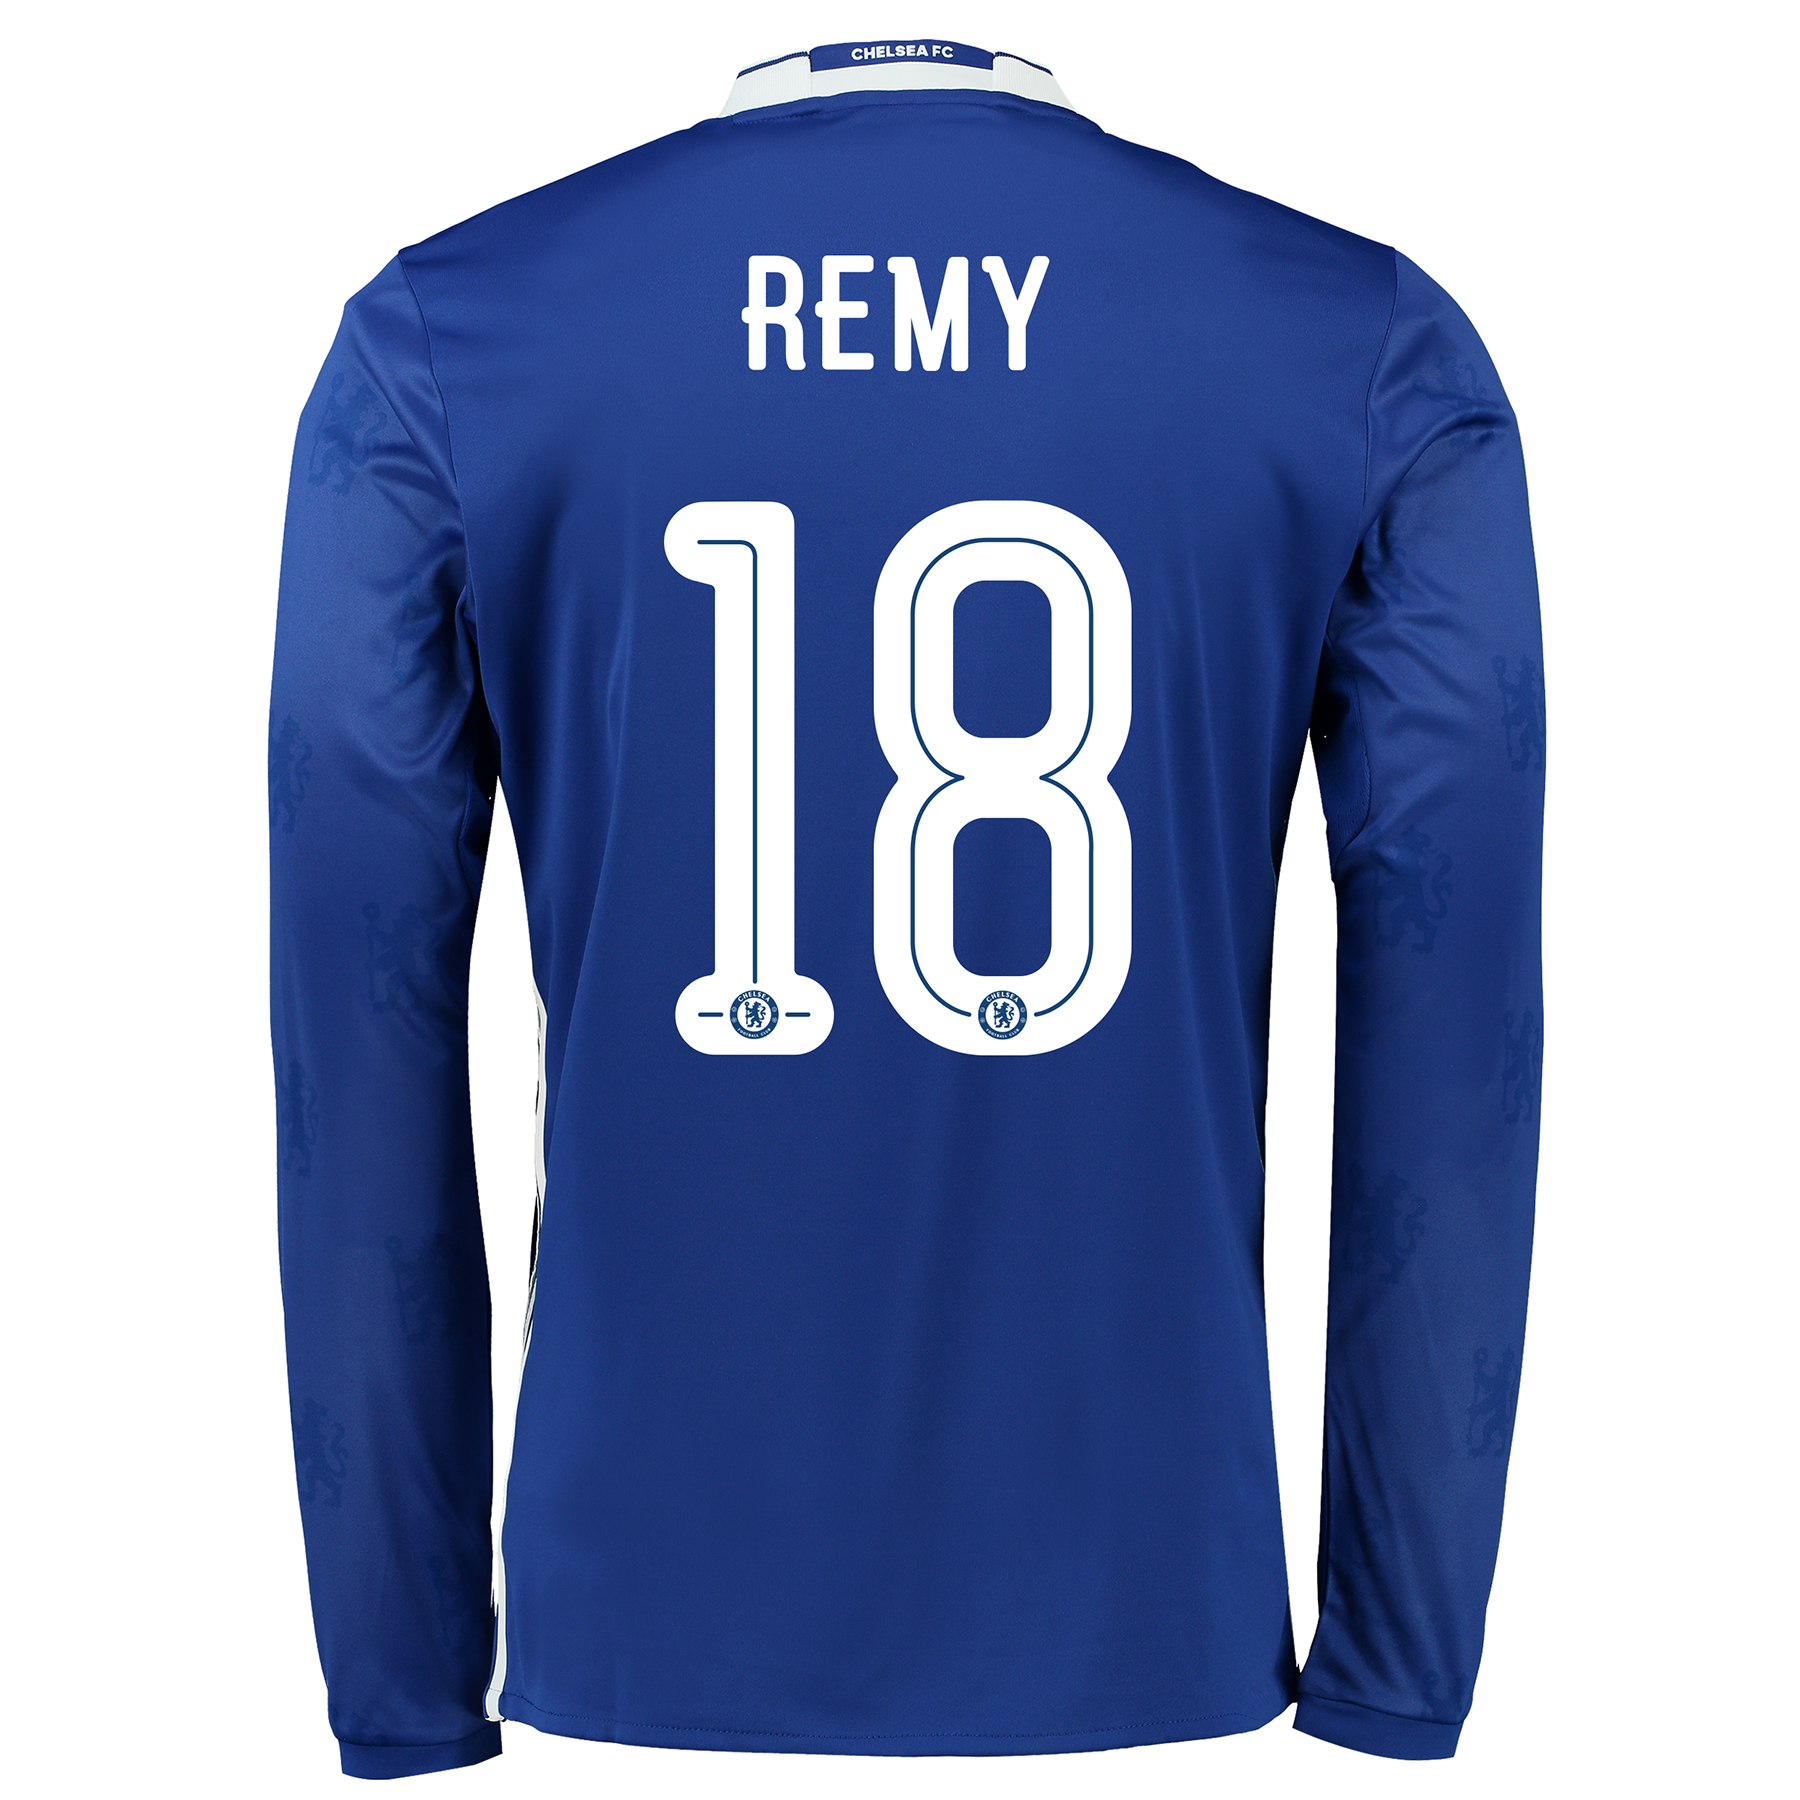 Chelsea Linear Home Shirt 2016-17 - Long Sleeve with Remy 18 printing